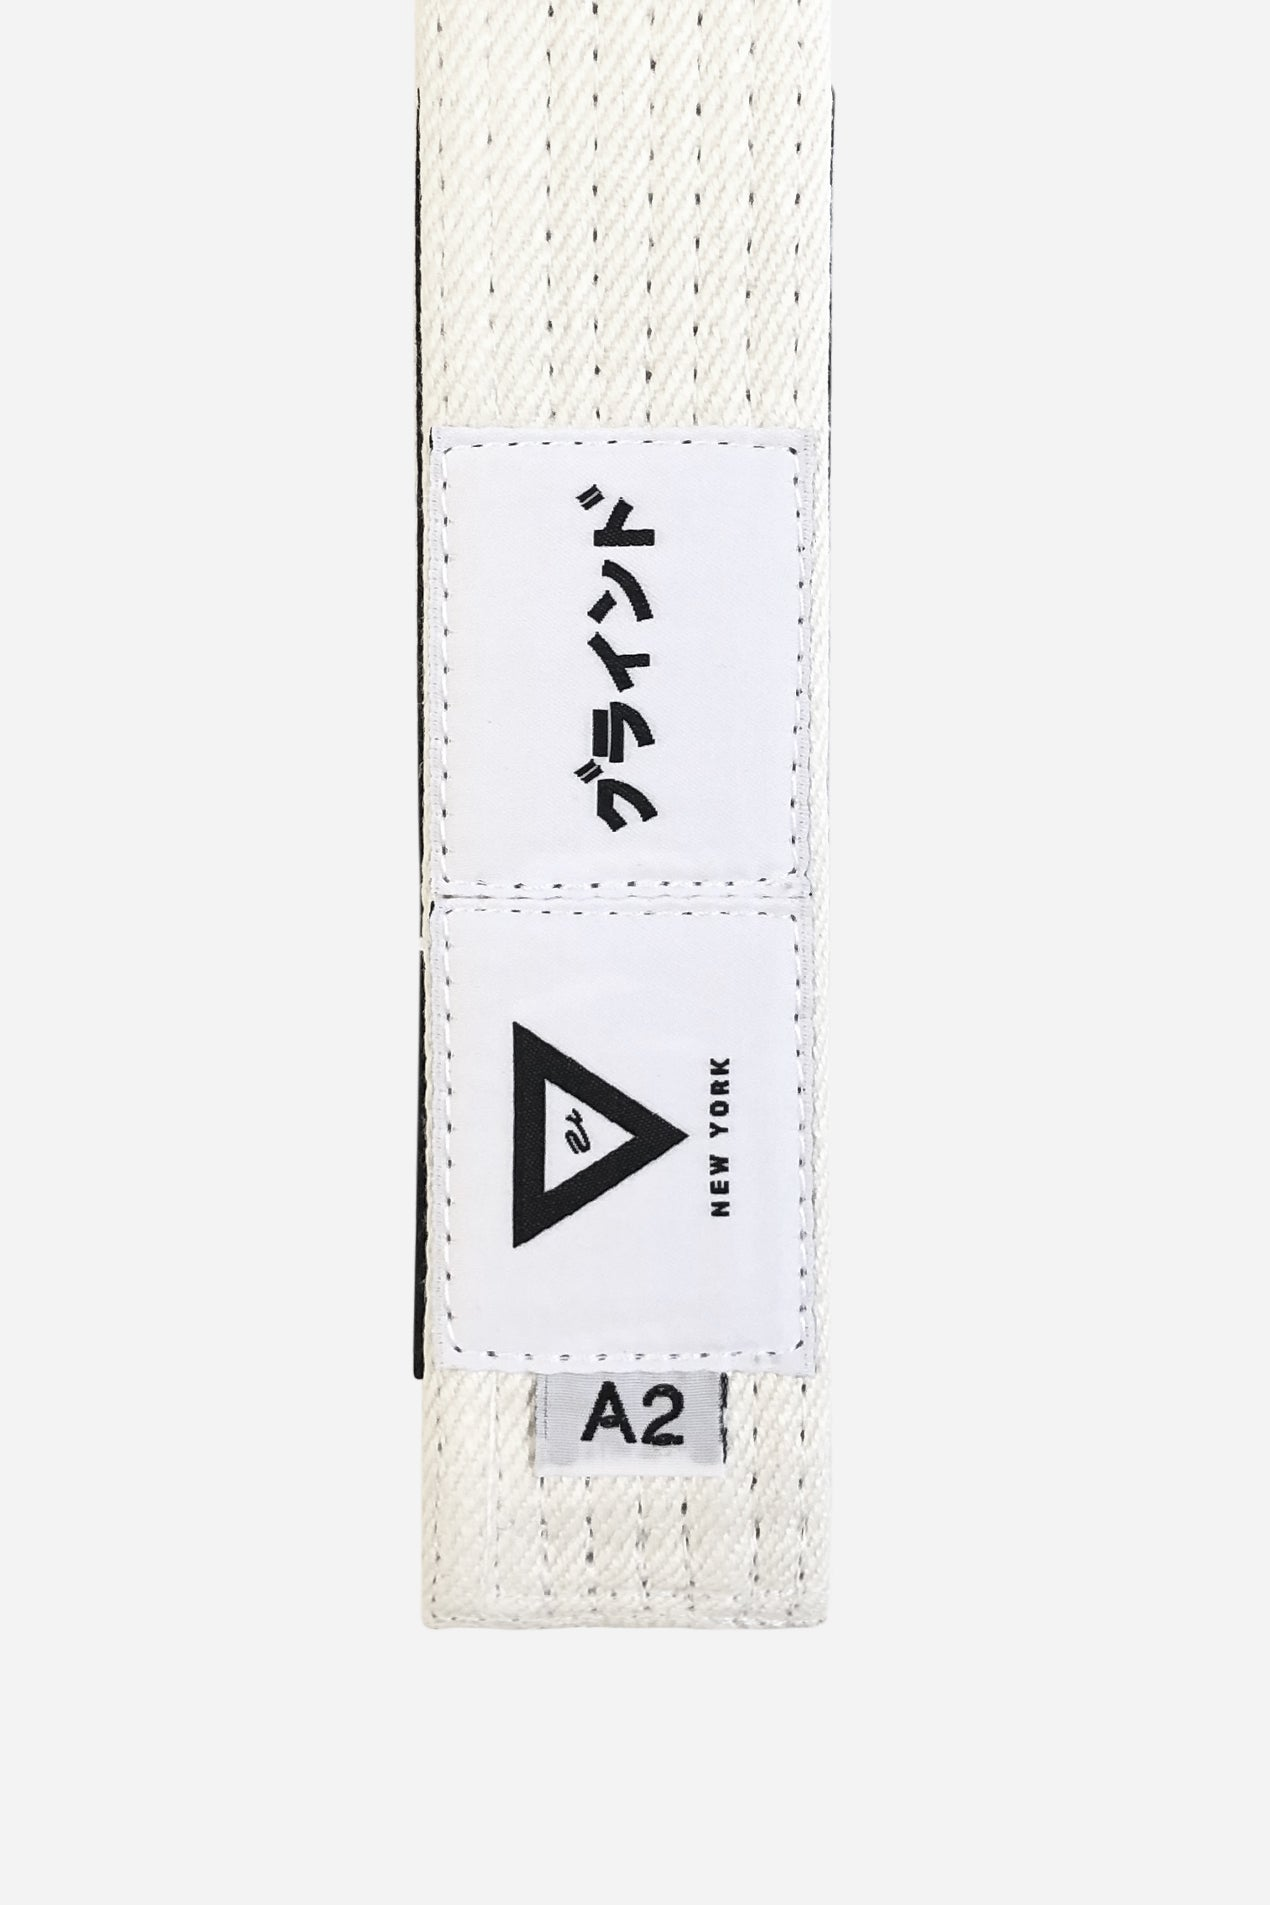 brazilian jiu jitsu white HEMP BELT vhtseurope vhtsny 11OZ 100% Hemp Twill Fabric Two Layers Of High-density Cotton Supporting Inner Core Of The Belt 8 Rows Stitching Belt Width: 1-5/8